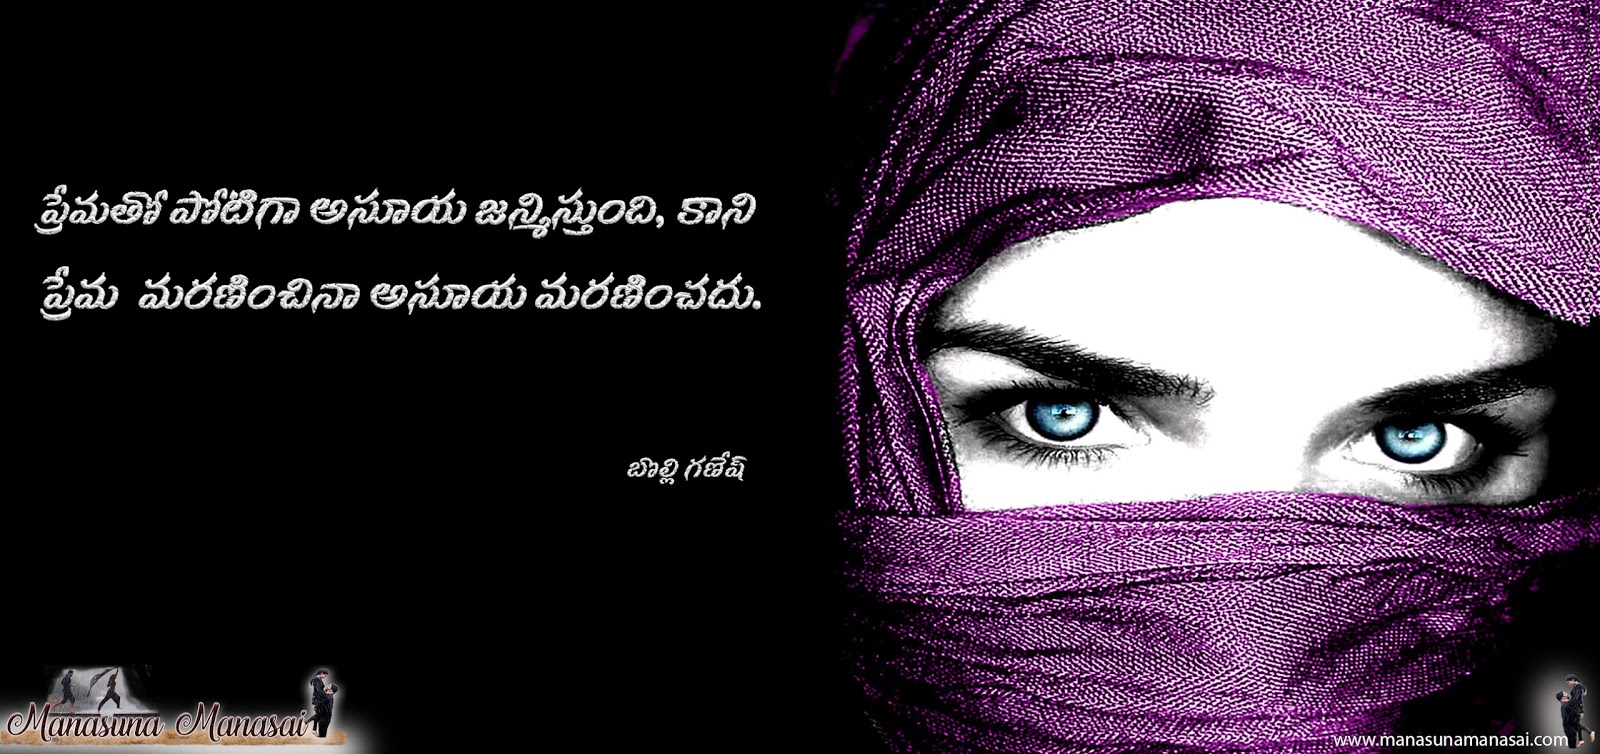 Telugu Love Quote Telugu Love Poems With Cute Couple Hd Wallpapers